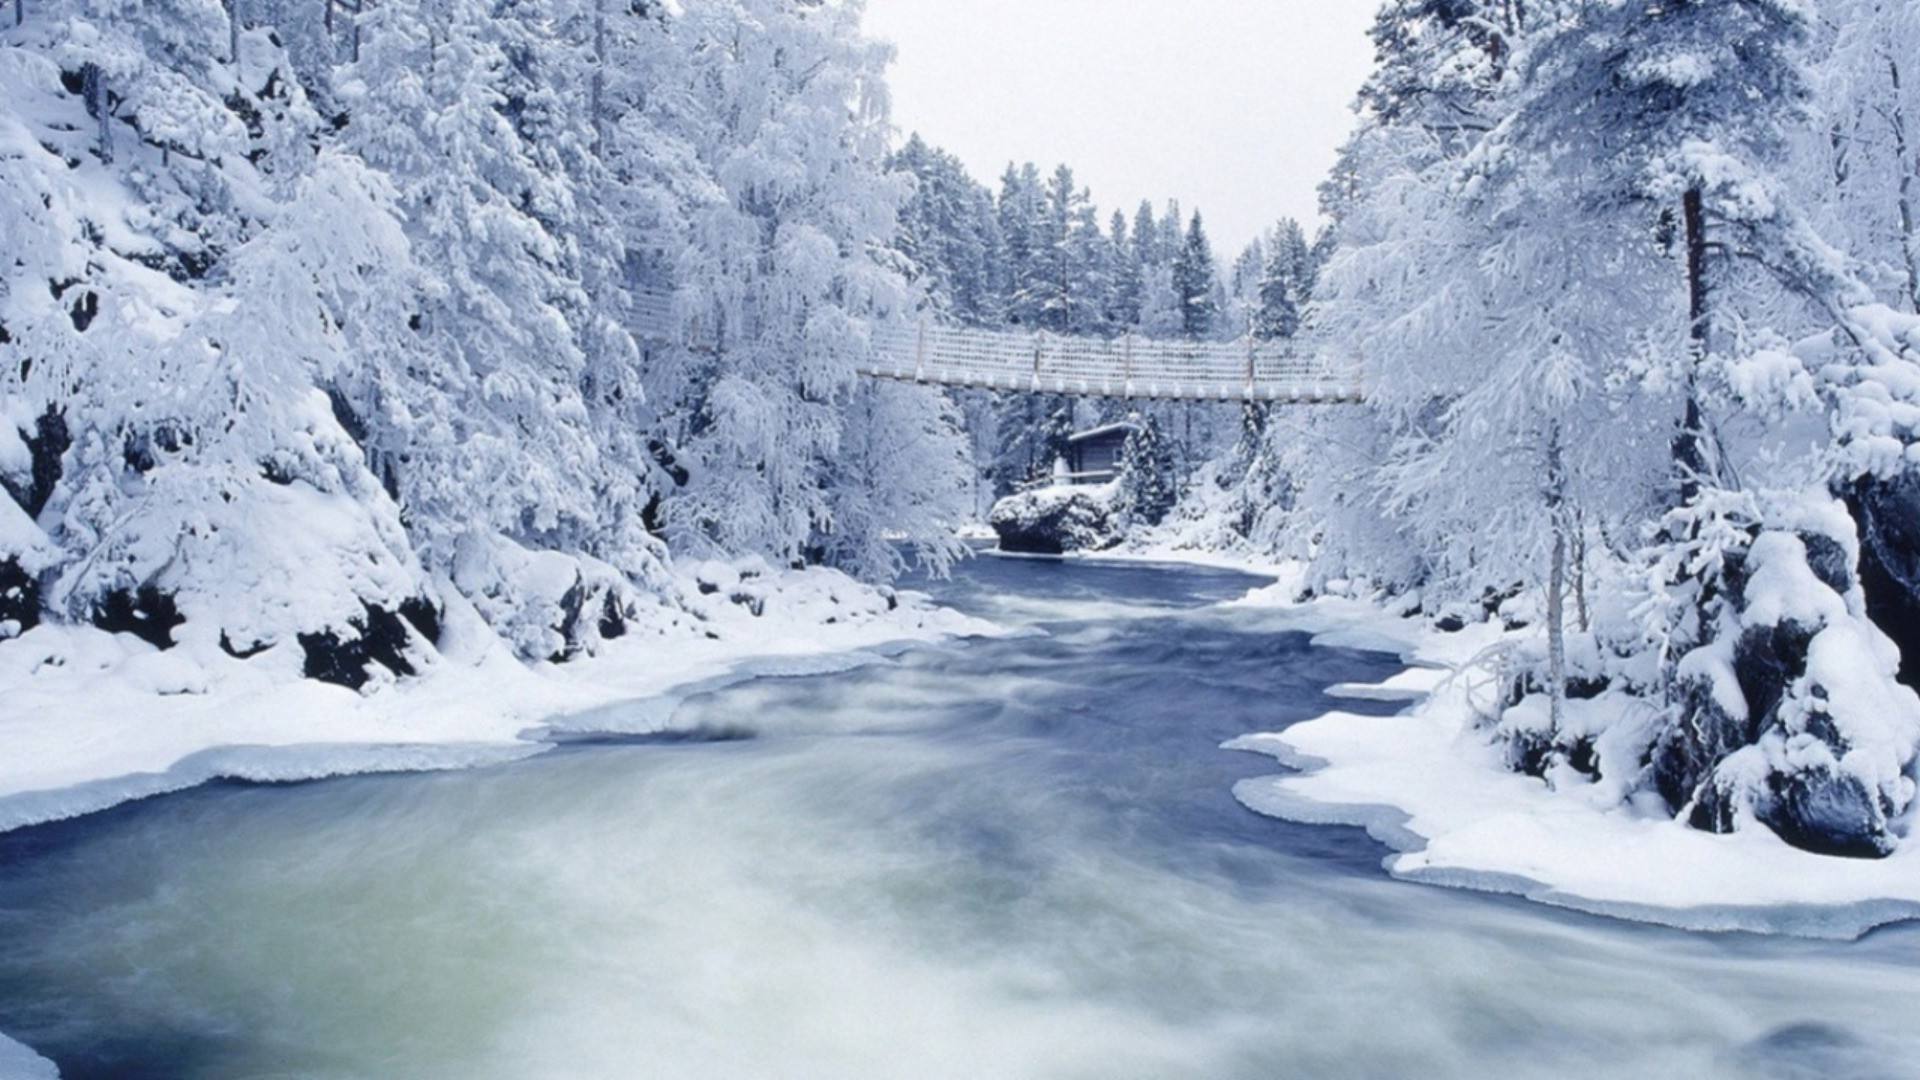 Snow, trees, river, bridge